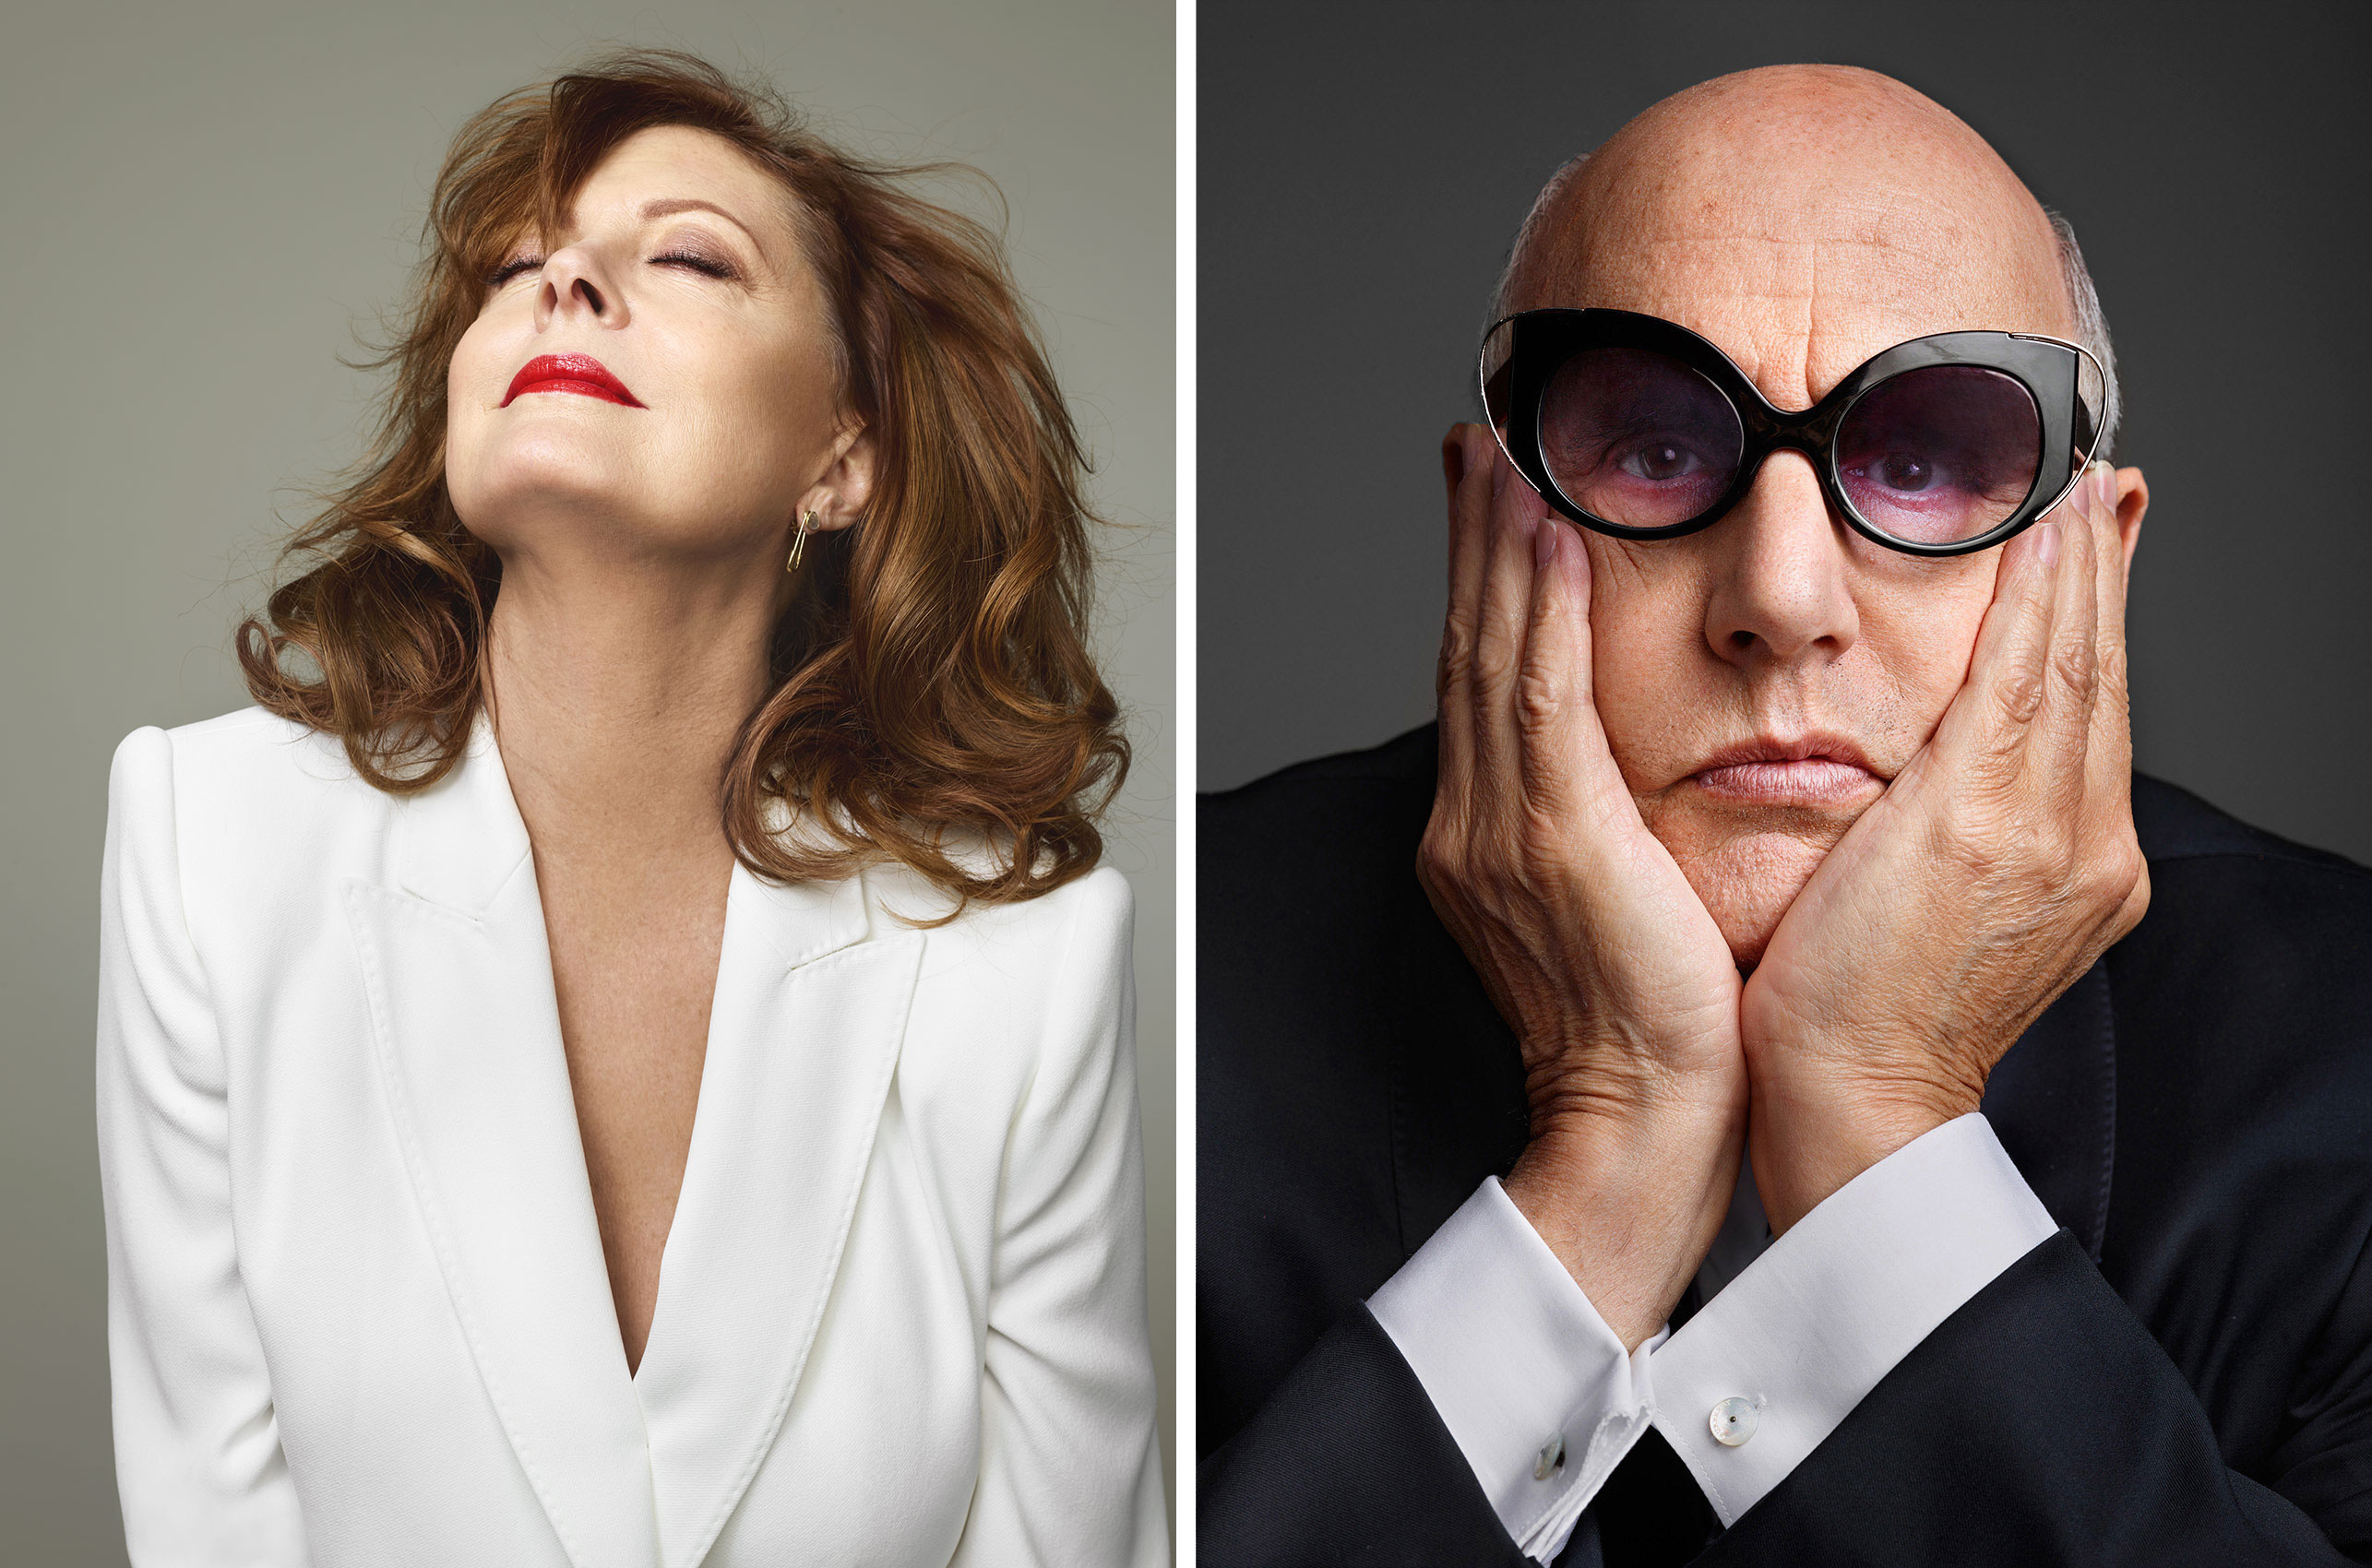 05_DUO_REV_Tambor_Sarandon